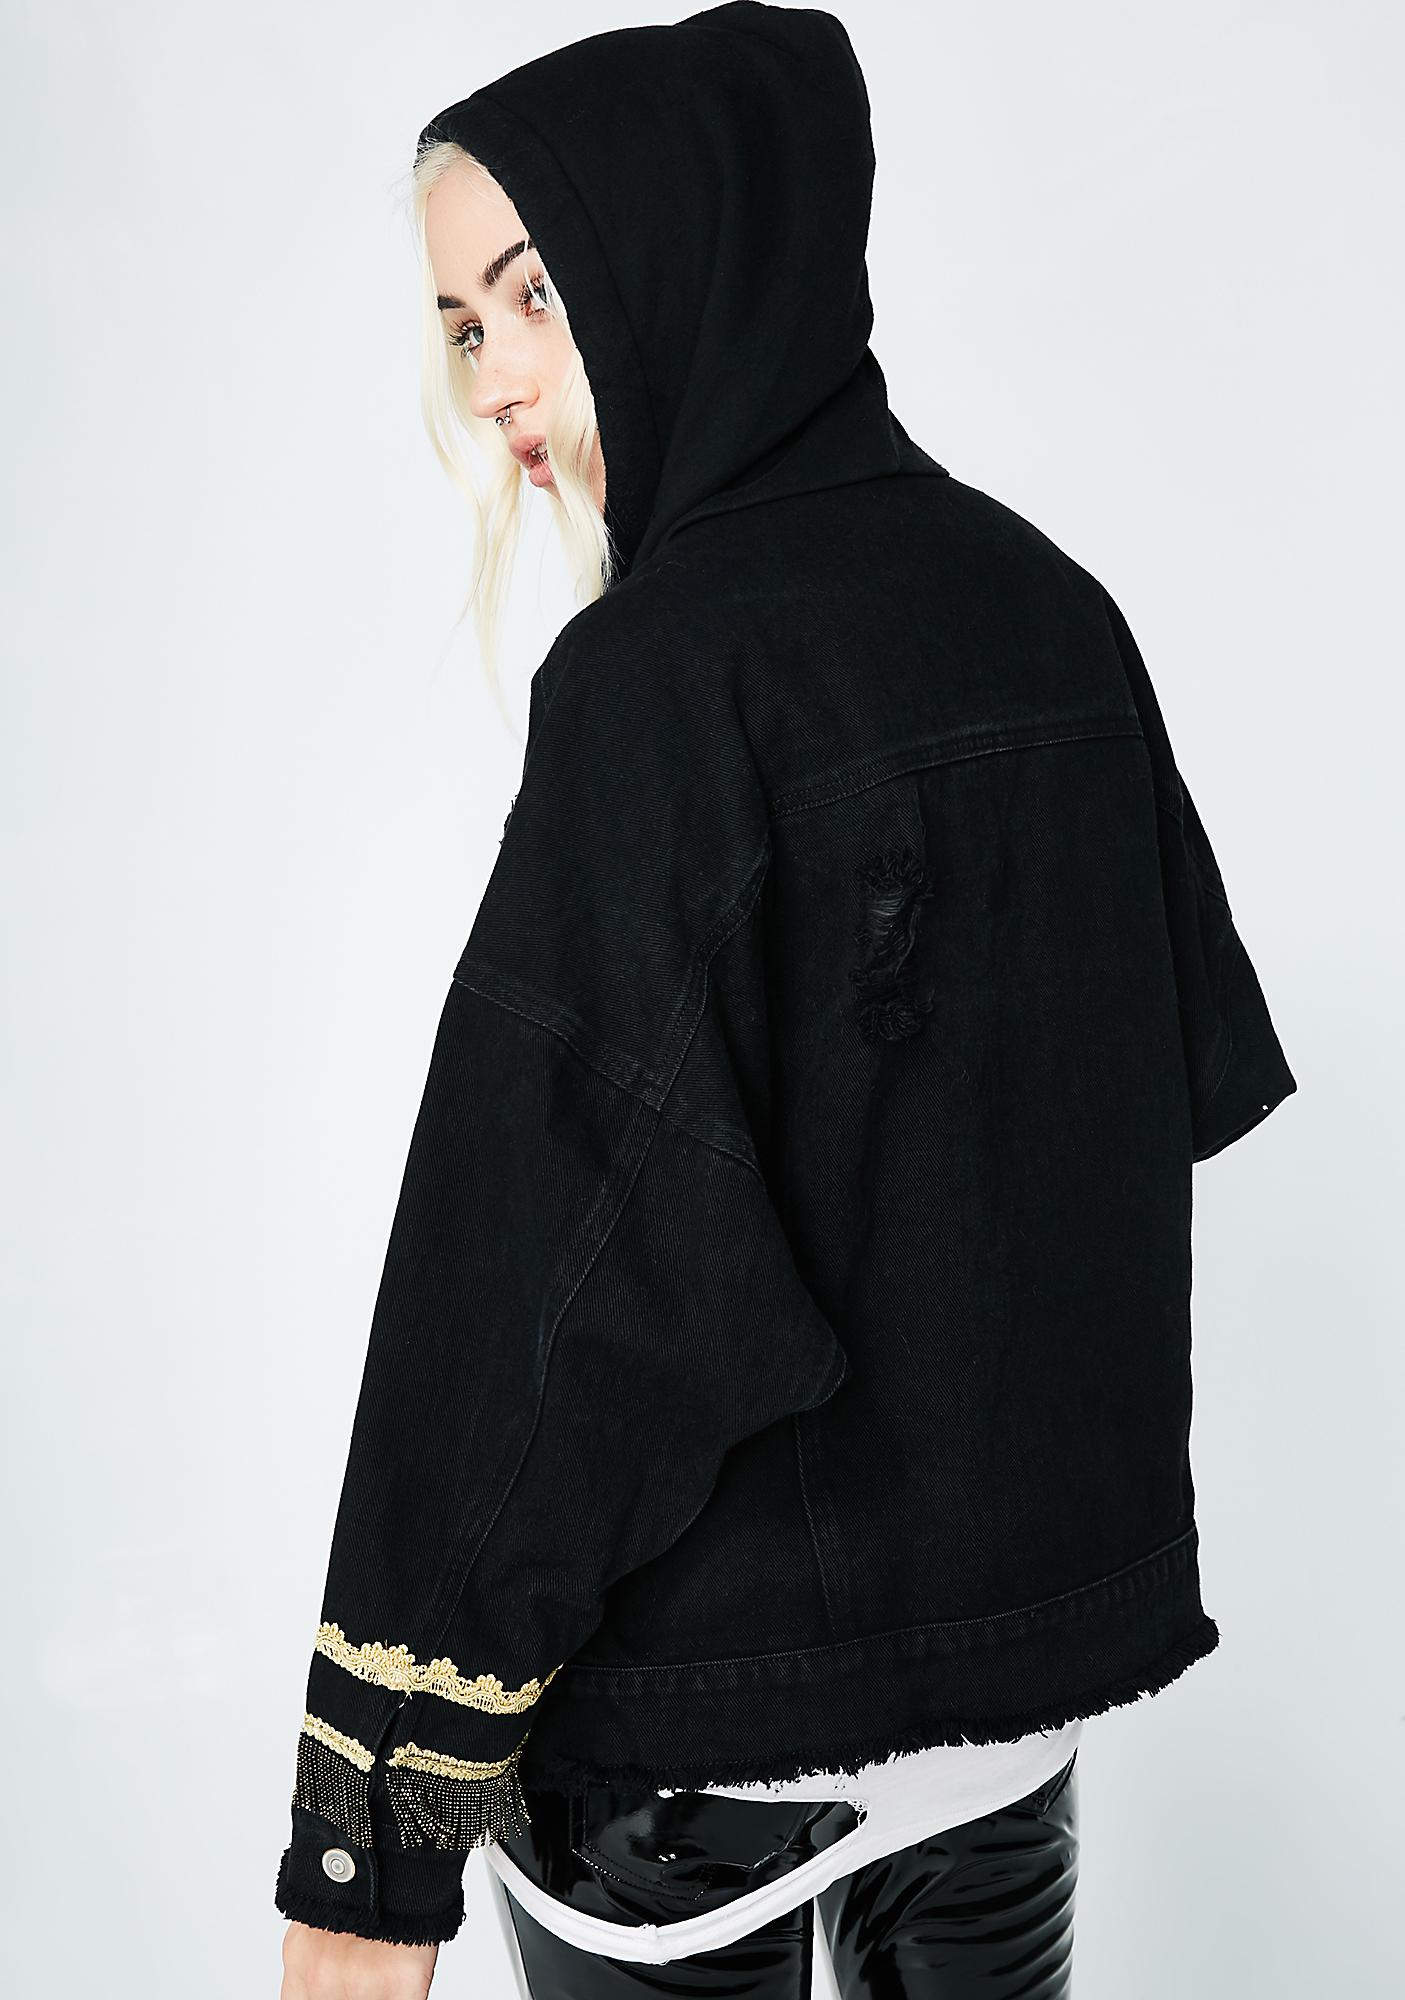 Too Good 4 U Hooded Jacket